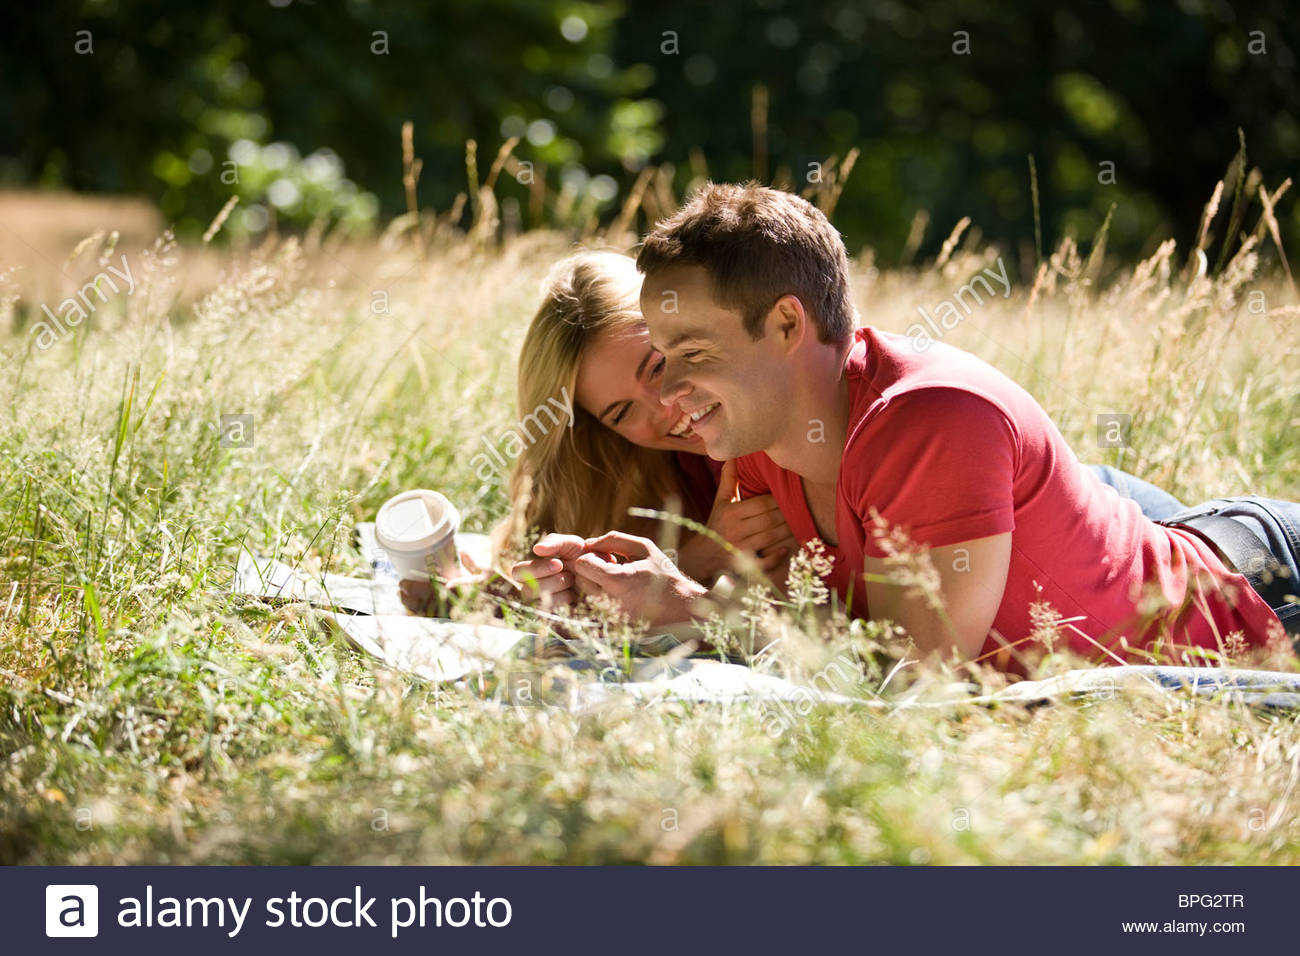 A young couple lying in the grass, relaxing Stock Photo